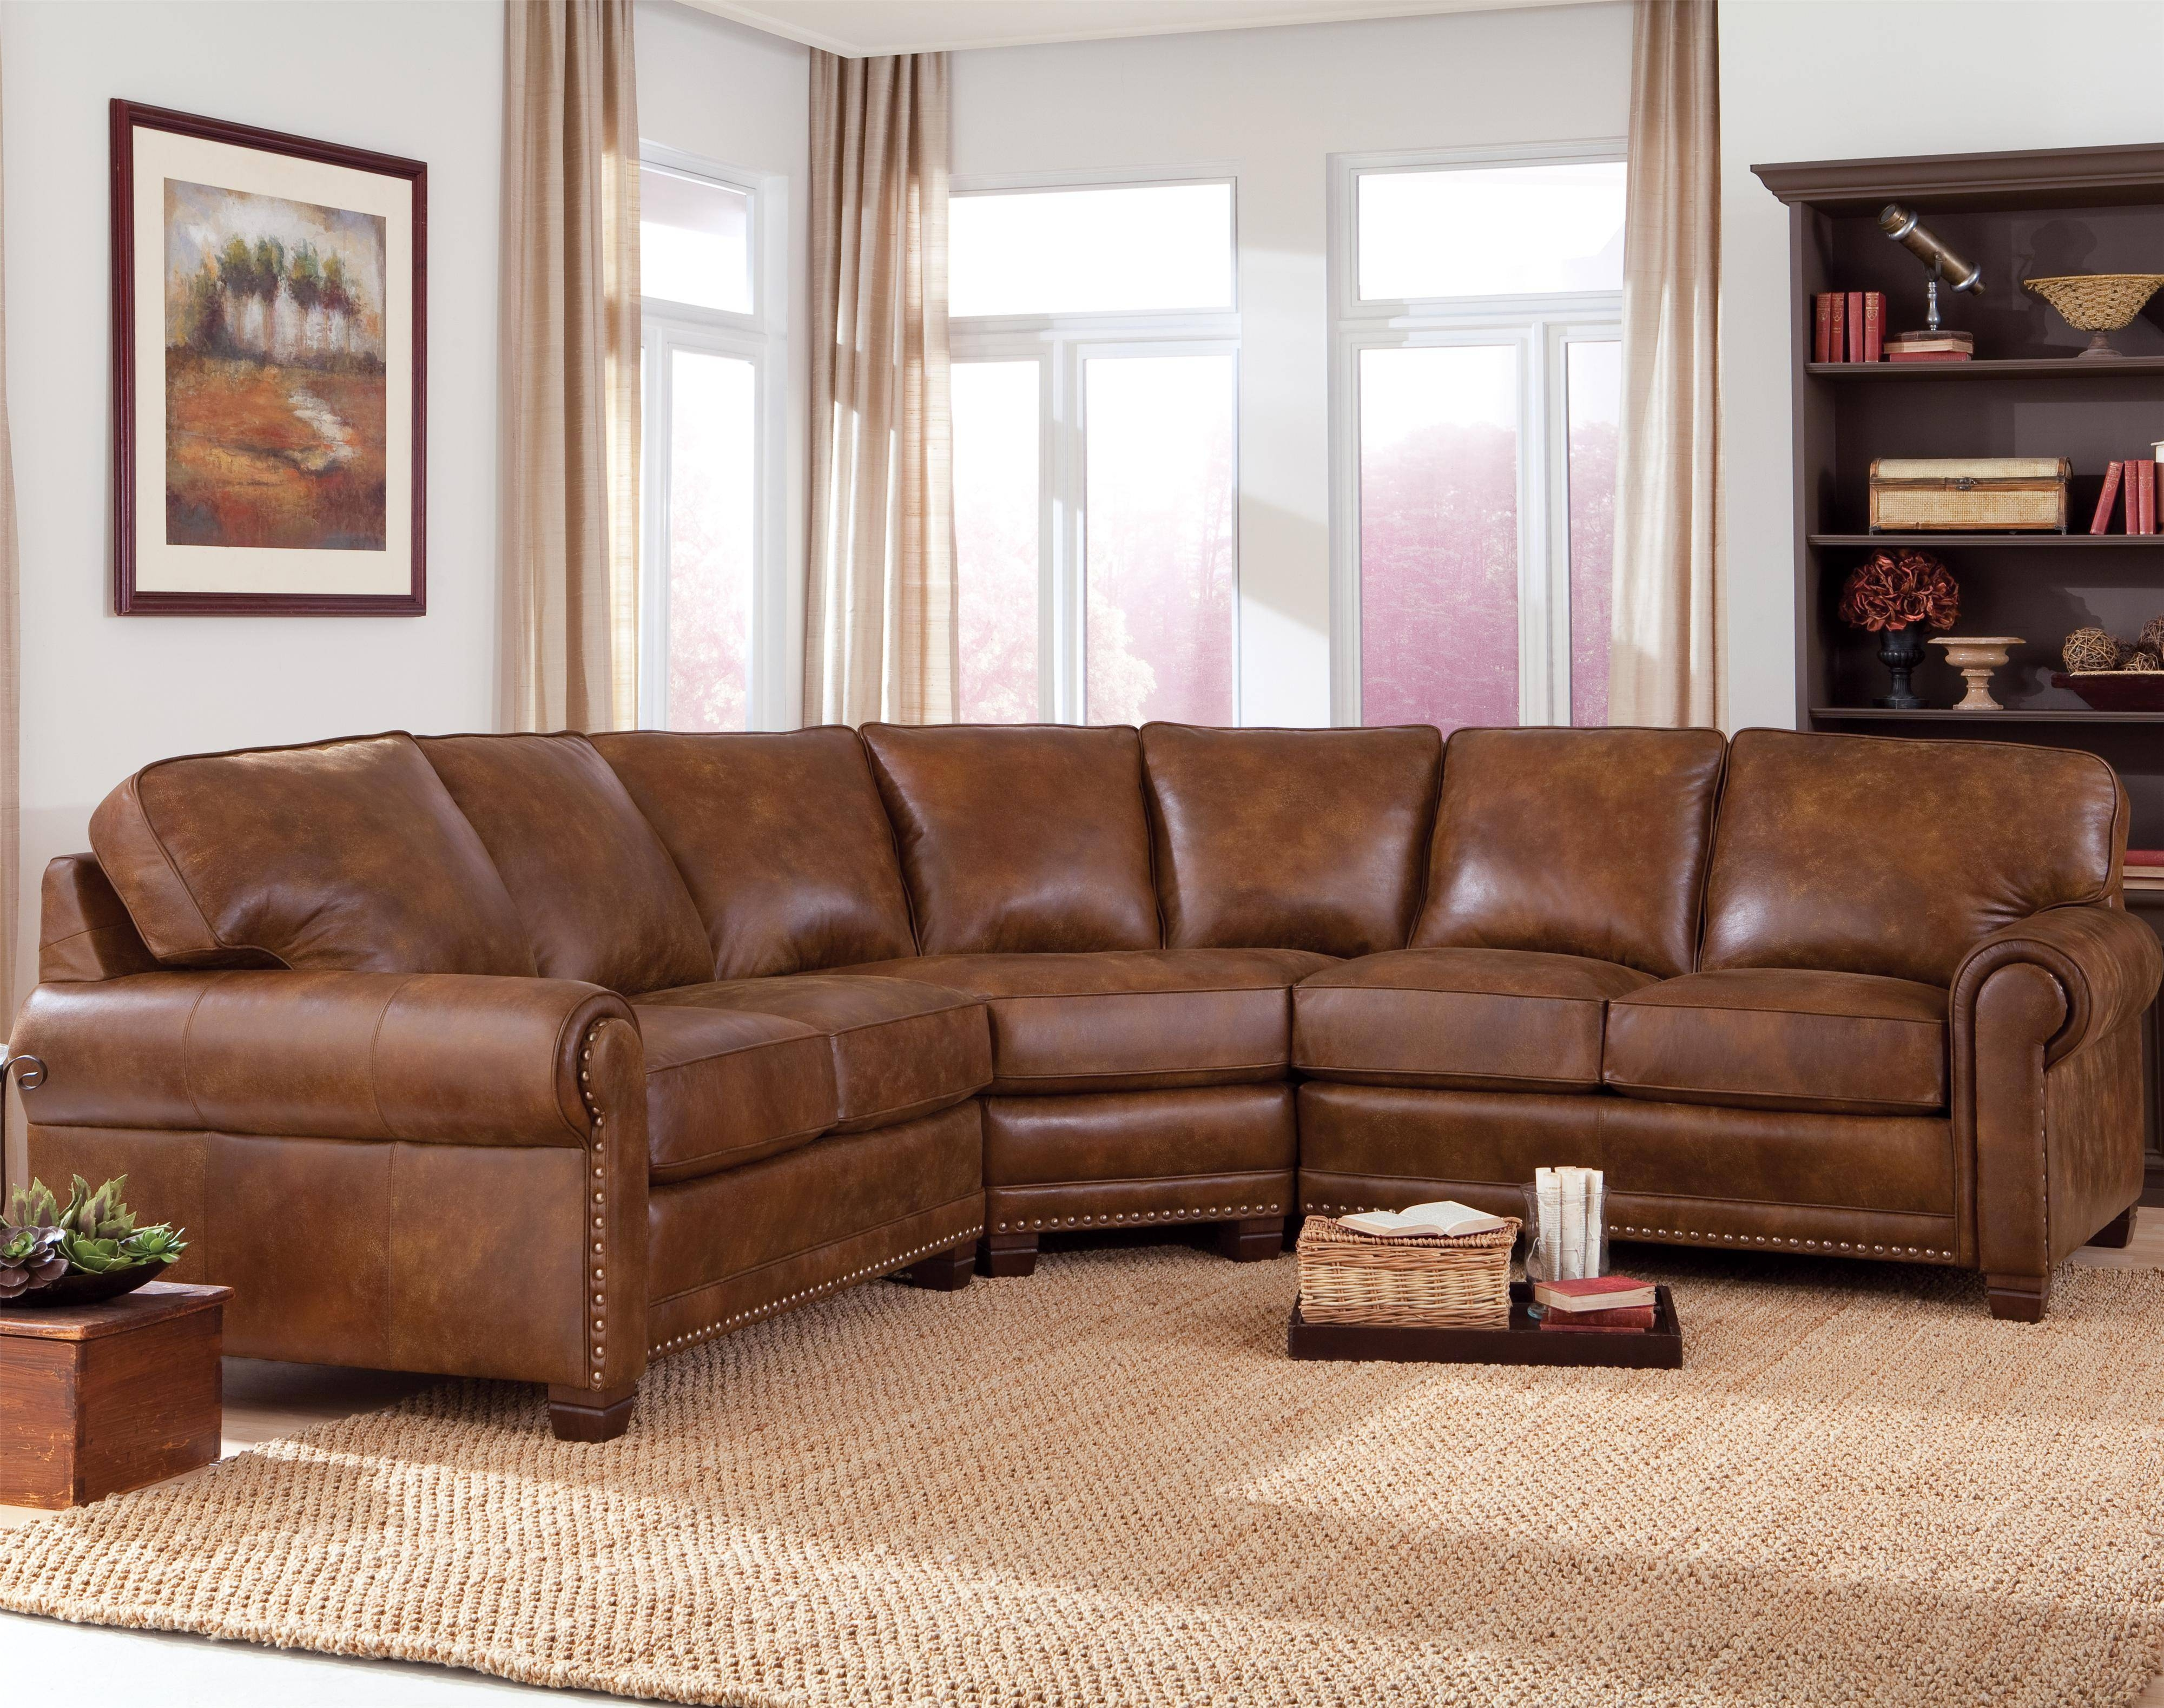 Soft Brown Leather Sectional Sofa | Tehranmix Decoration For Small Brown Leather Corner Sofas (View 29 of 30)